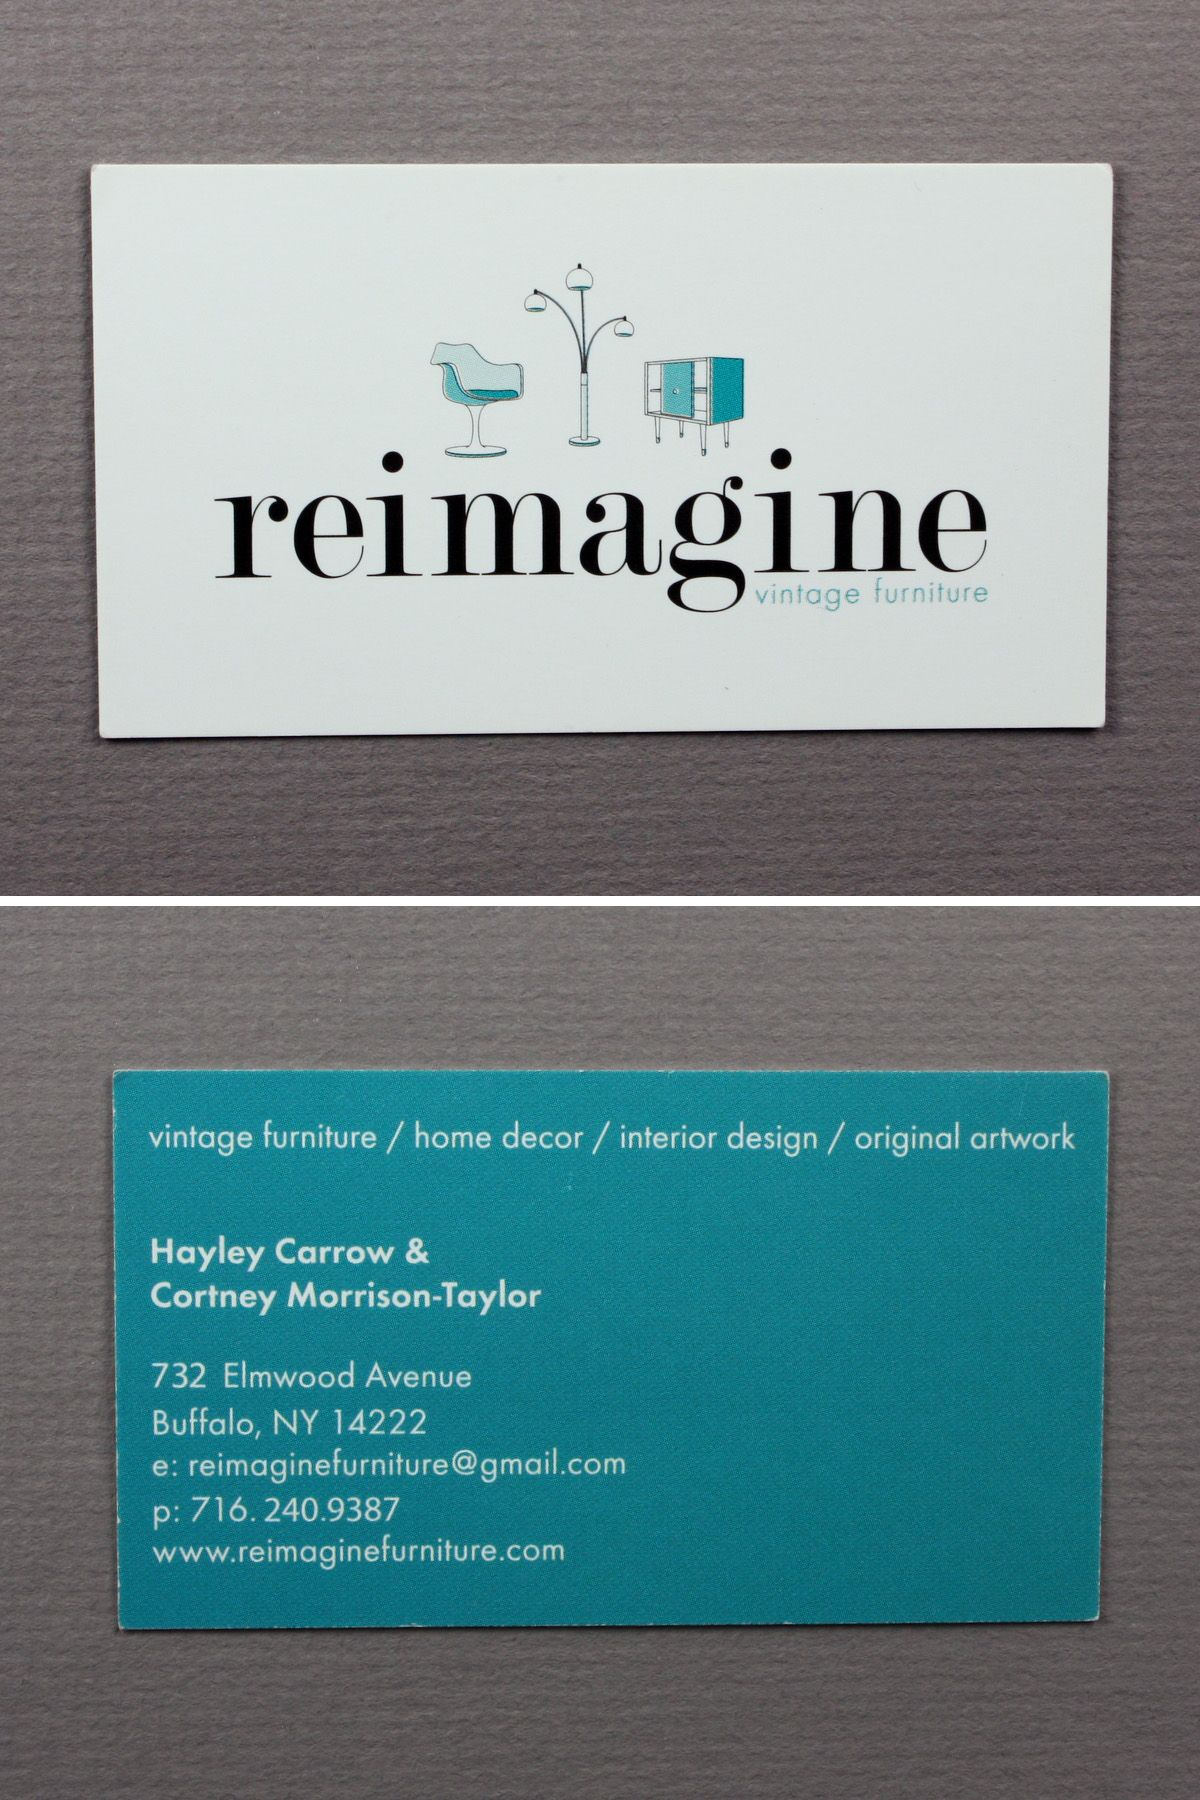 Reimagine vintage furniture hayley carrow cortney morrison reimagine vintage furniture hayley carrow cortney morrison taylor reimaginefurniture reheart Gallery